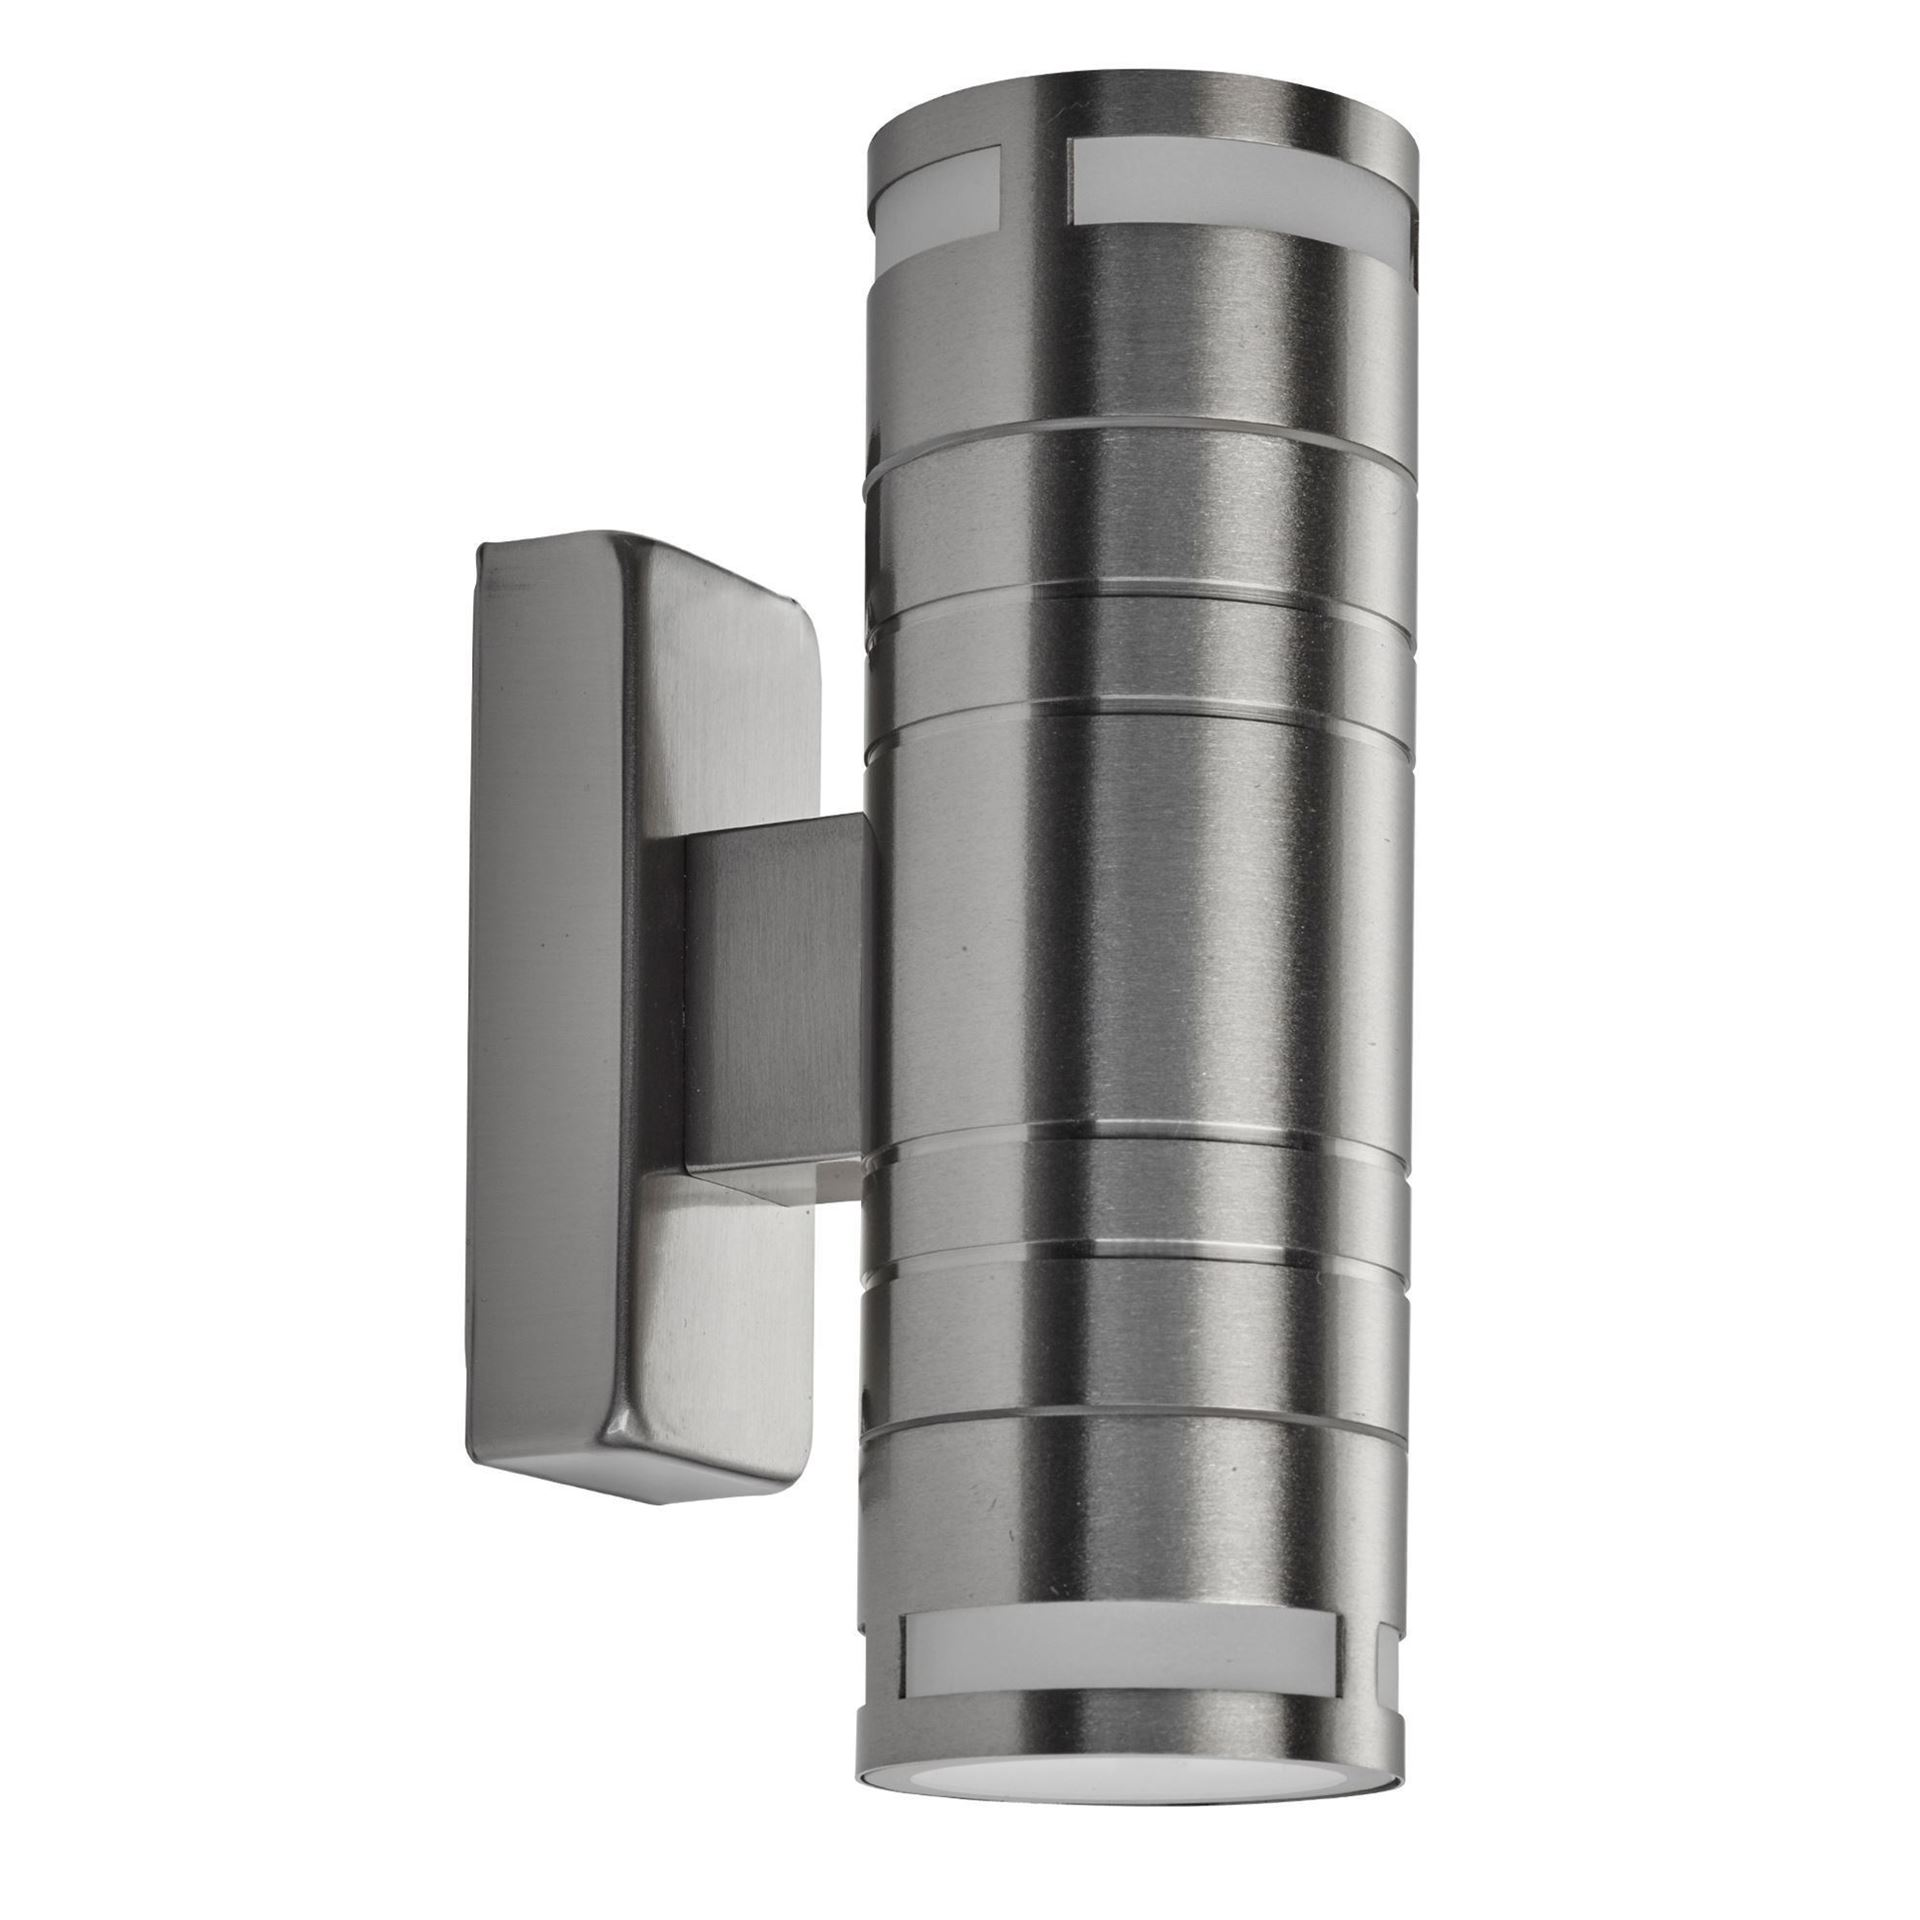 LED IP44 STAINLESS STEEL 2 LIGHT OUTDOOR WALL LIGHT WITH GU10 2018-2-LED